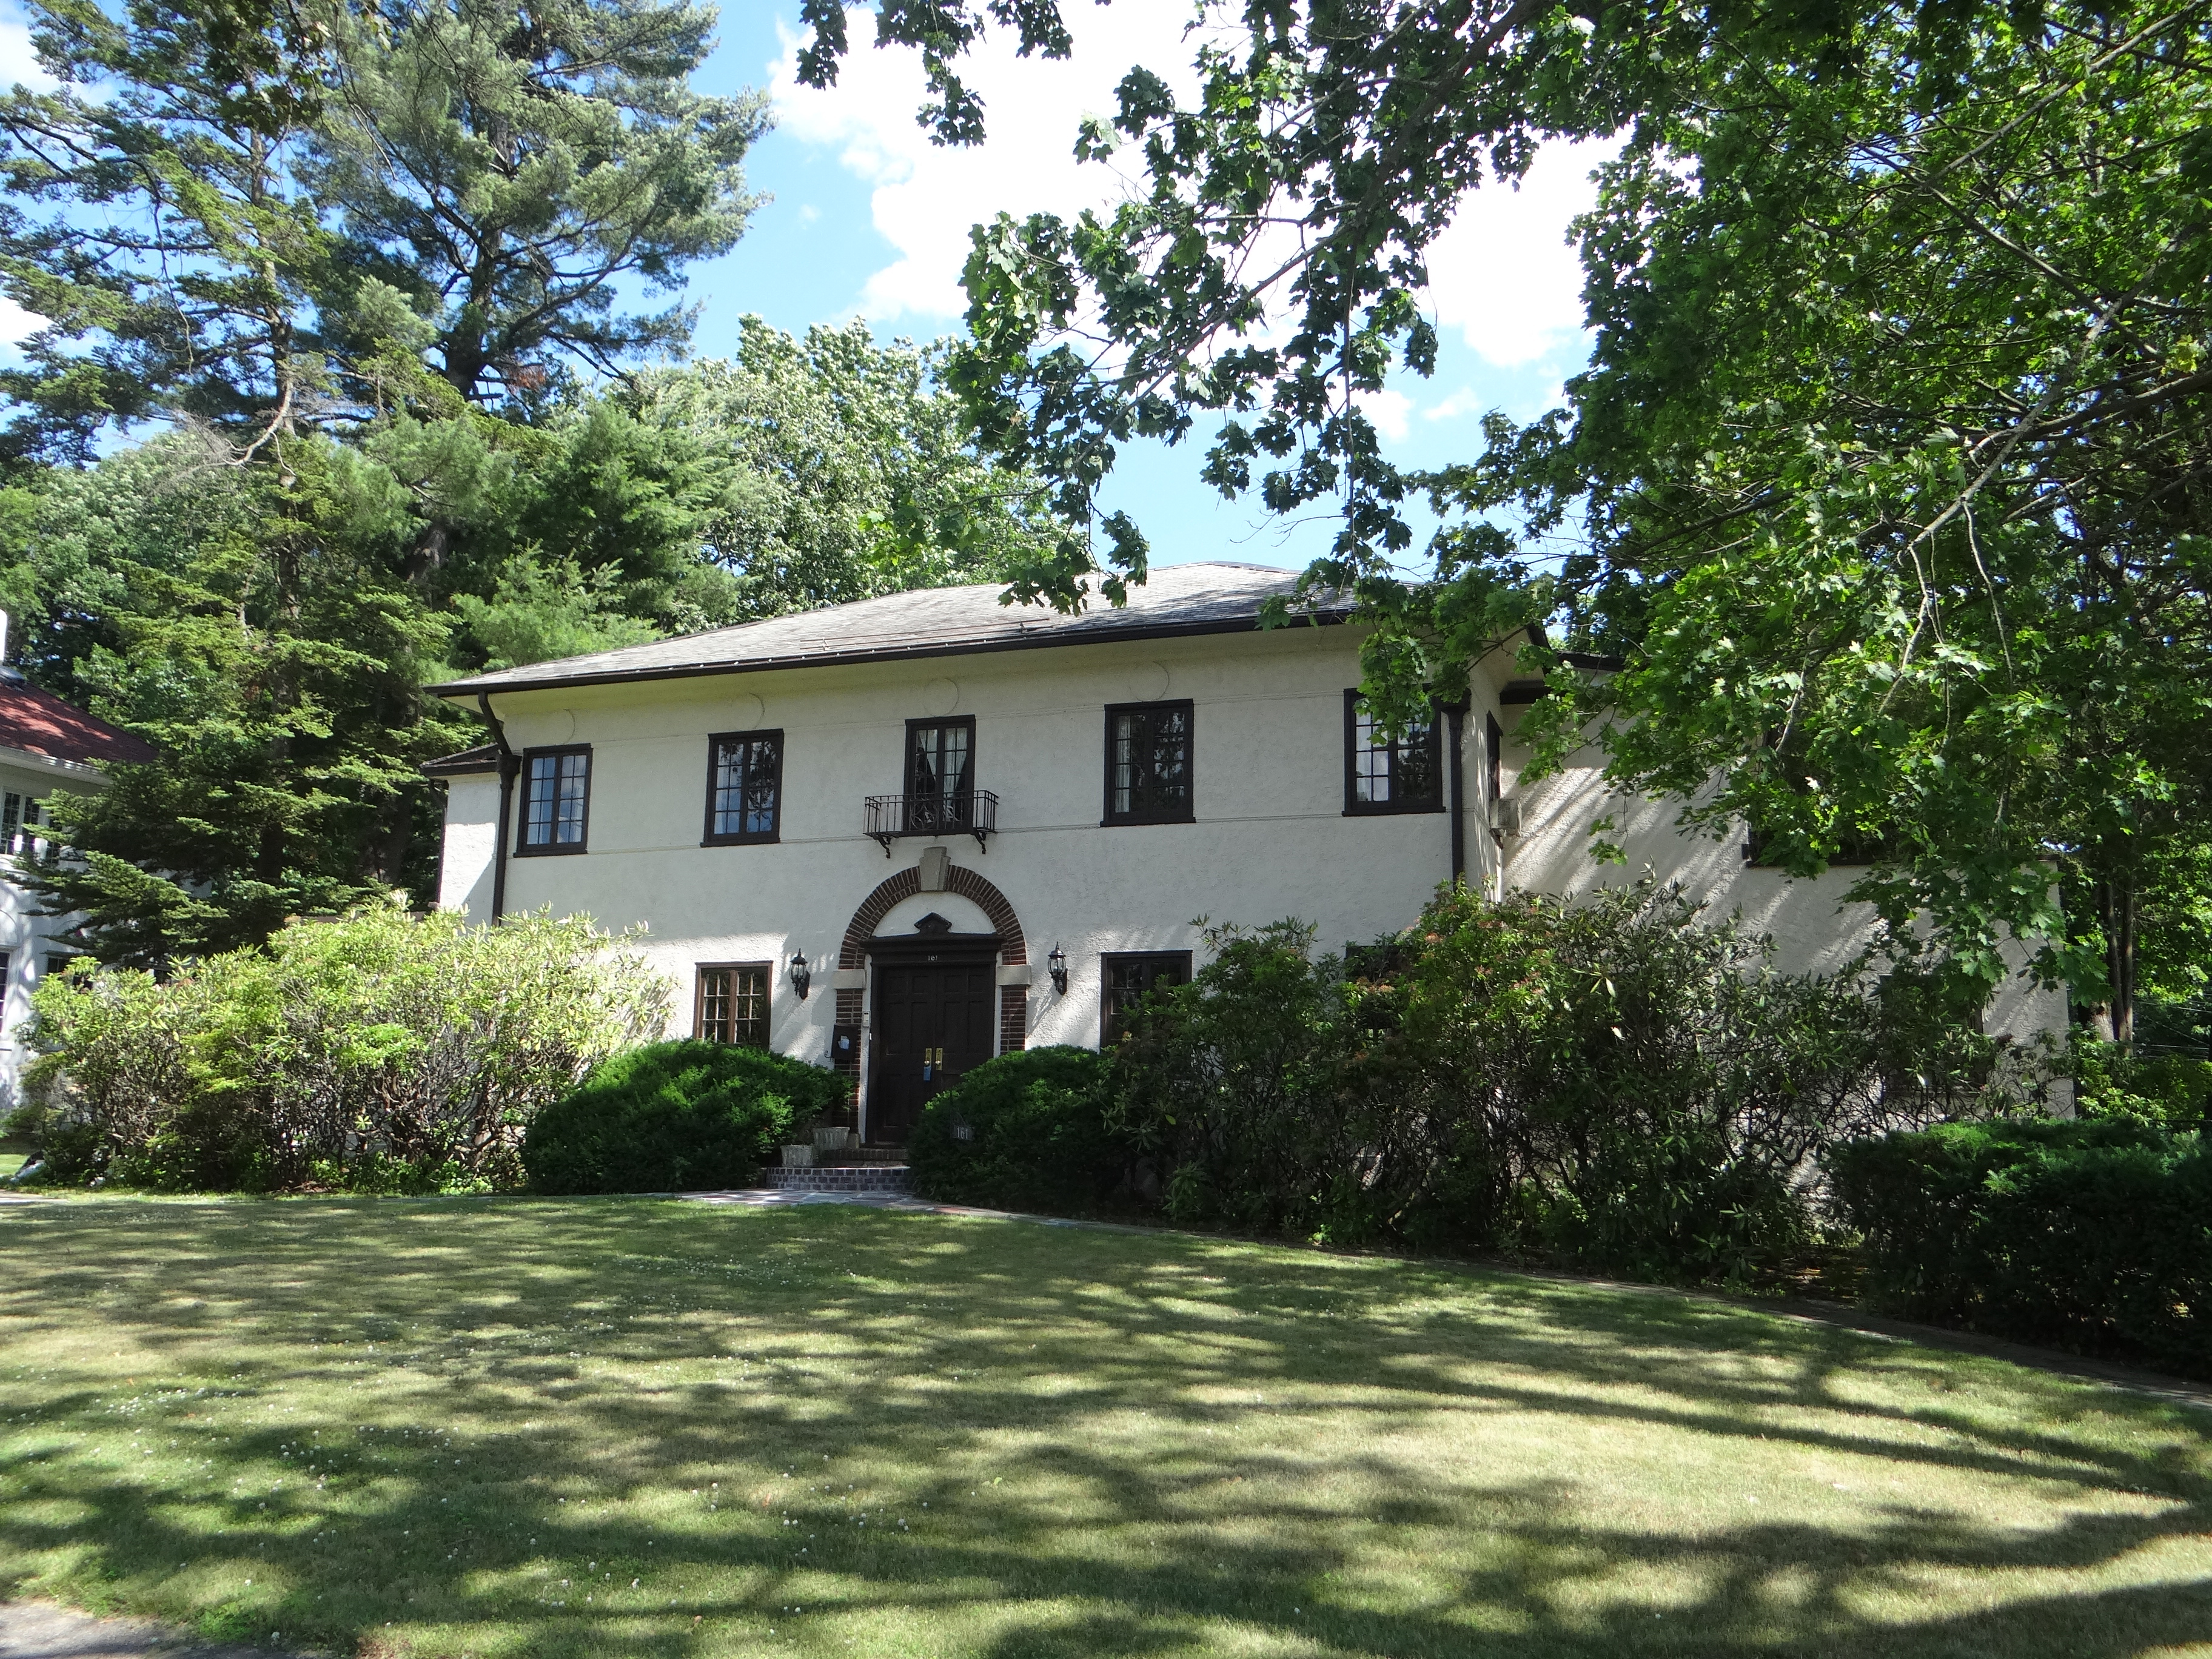 Single Family Home for Sale at Mediterranean Charm With Pool 161 Forest Avenue New Rochelle, New York 10804 United States